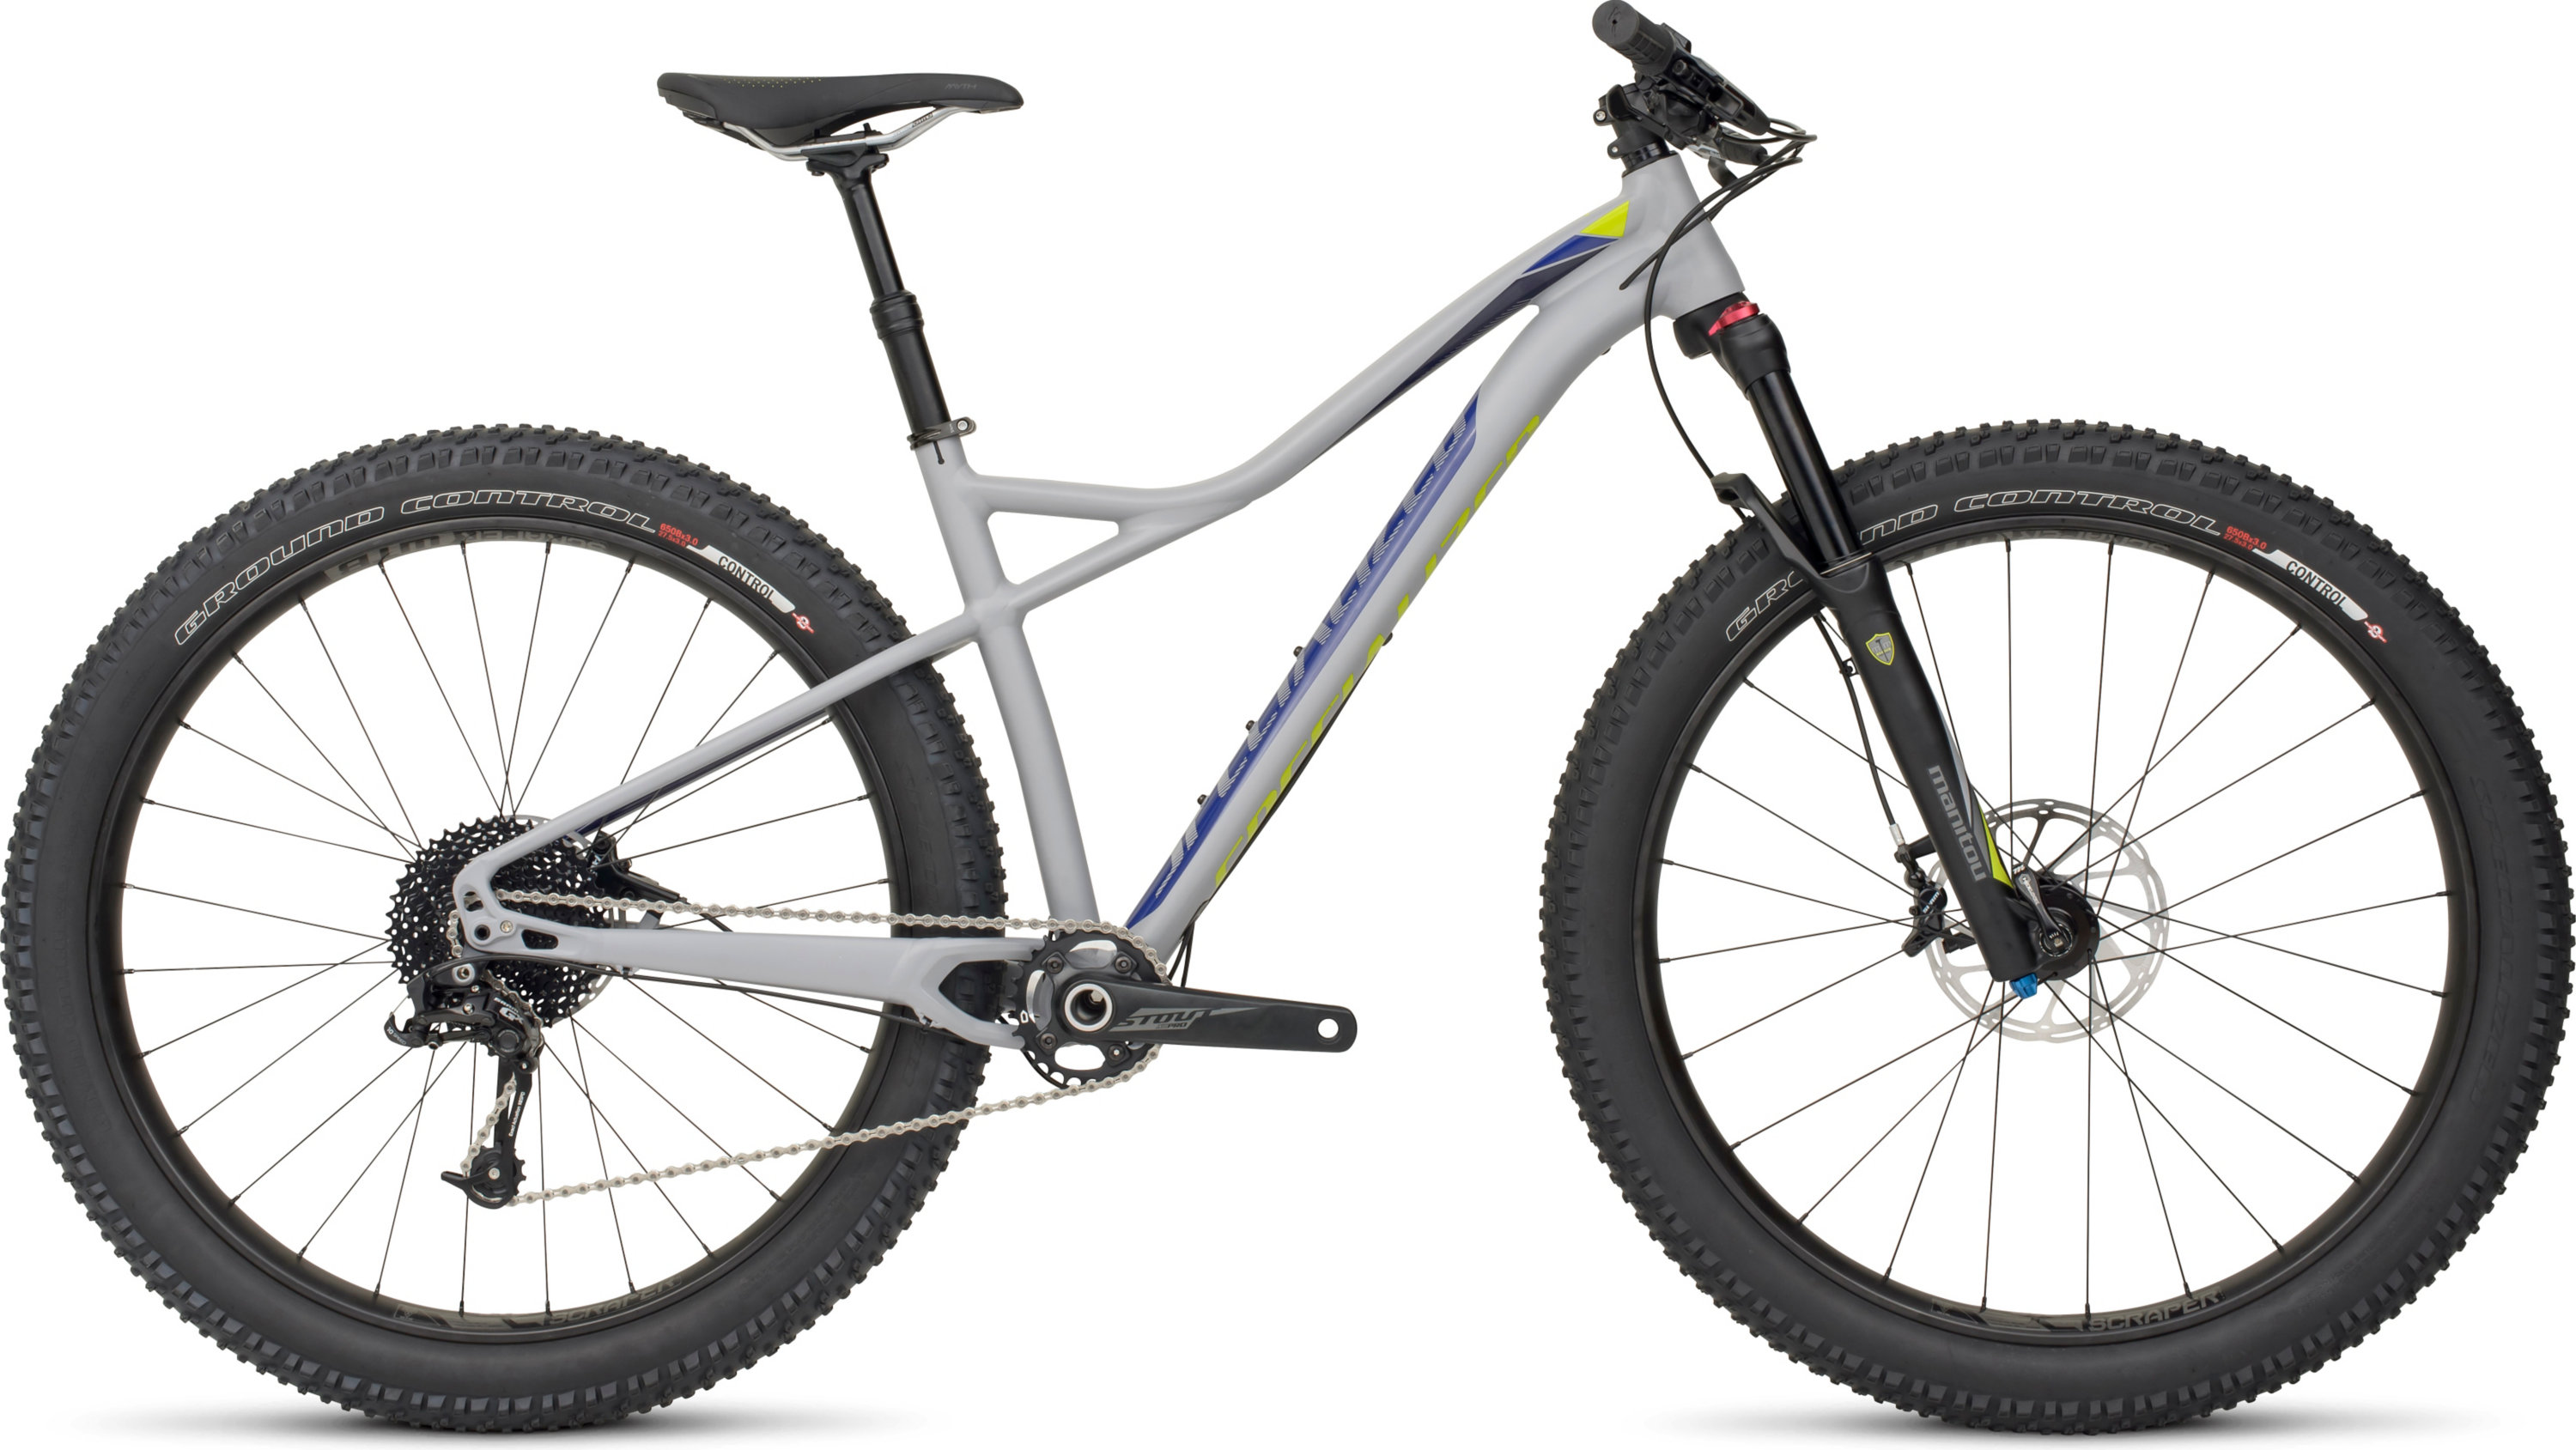 SPECIALIZED RUZE EXPERT 6FATTIE CLGRY/DPNDGO/HYP S - Bikedreams & Dustbikes